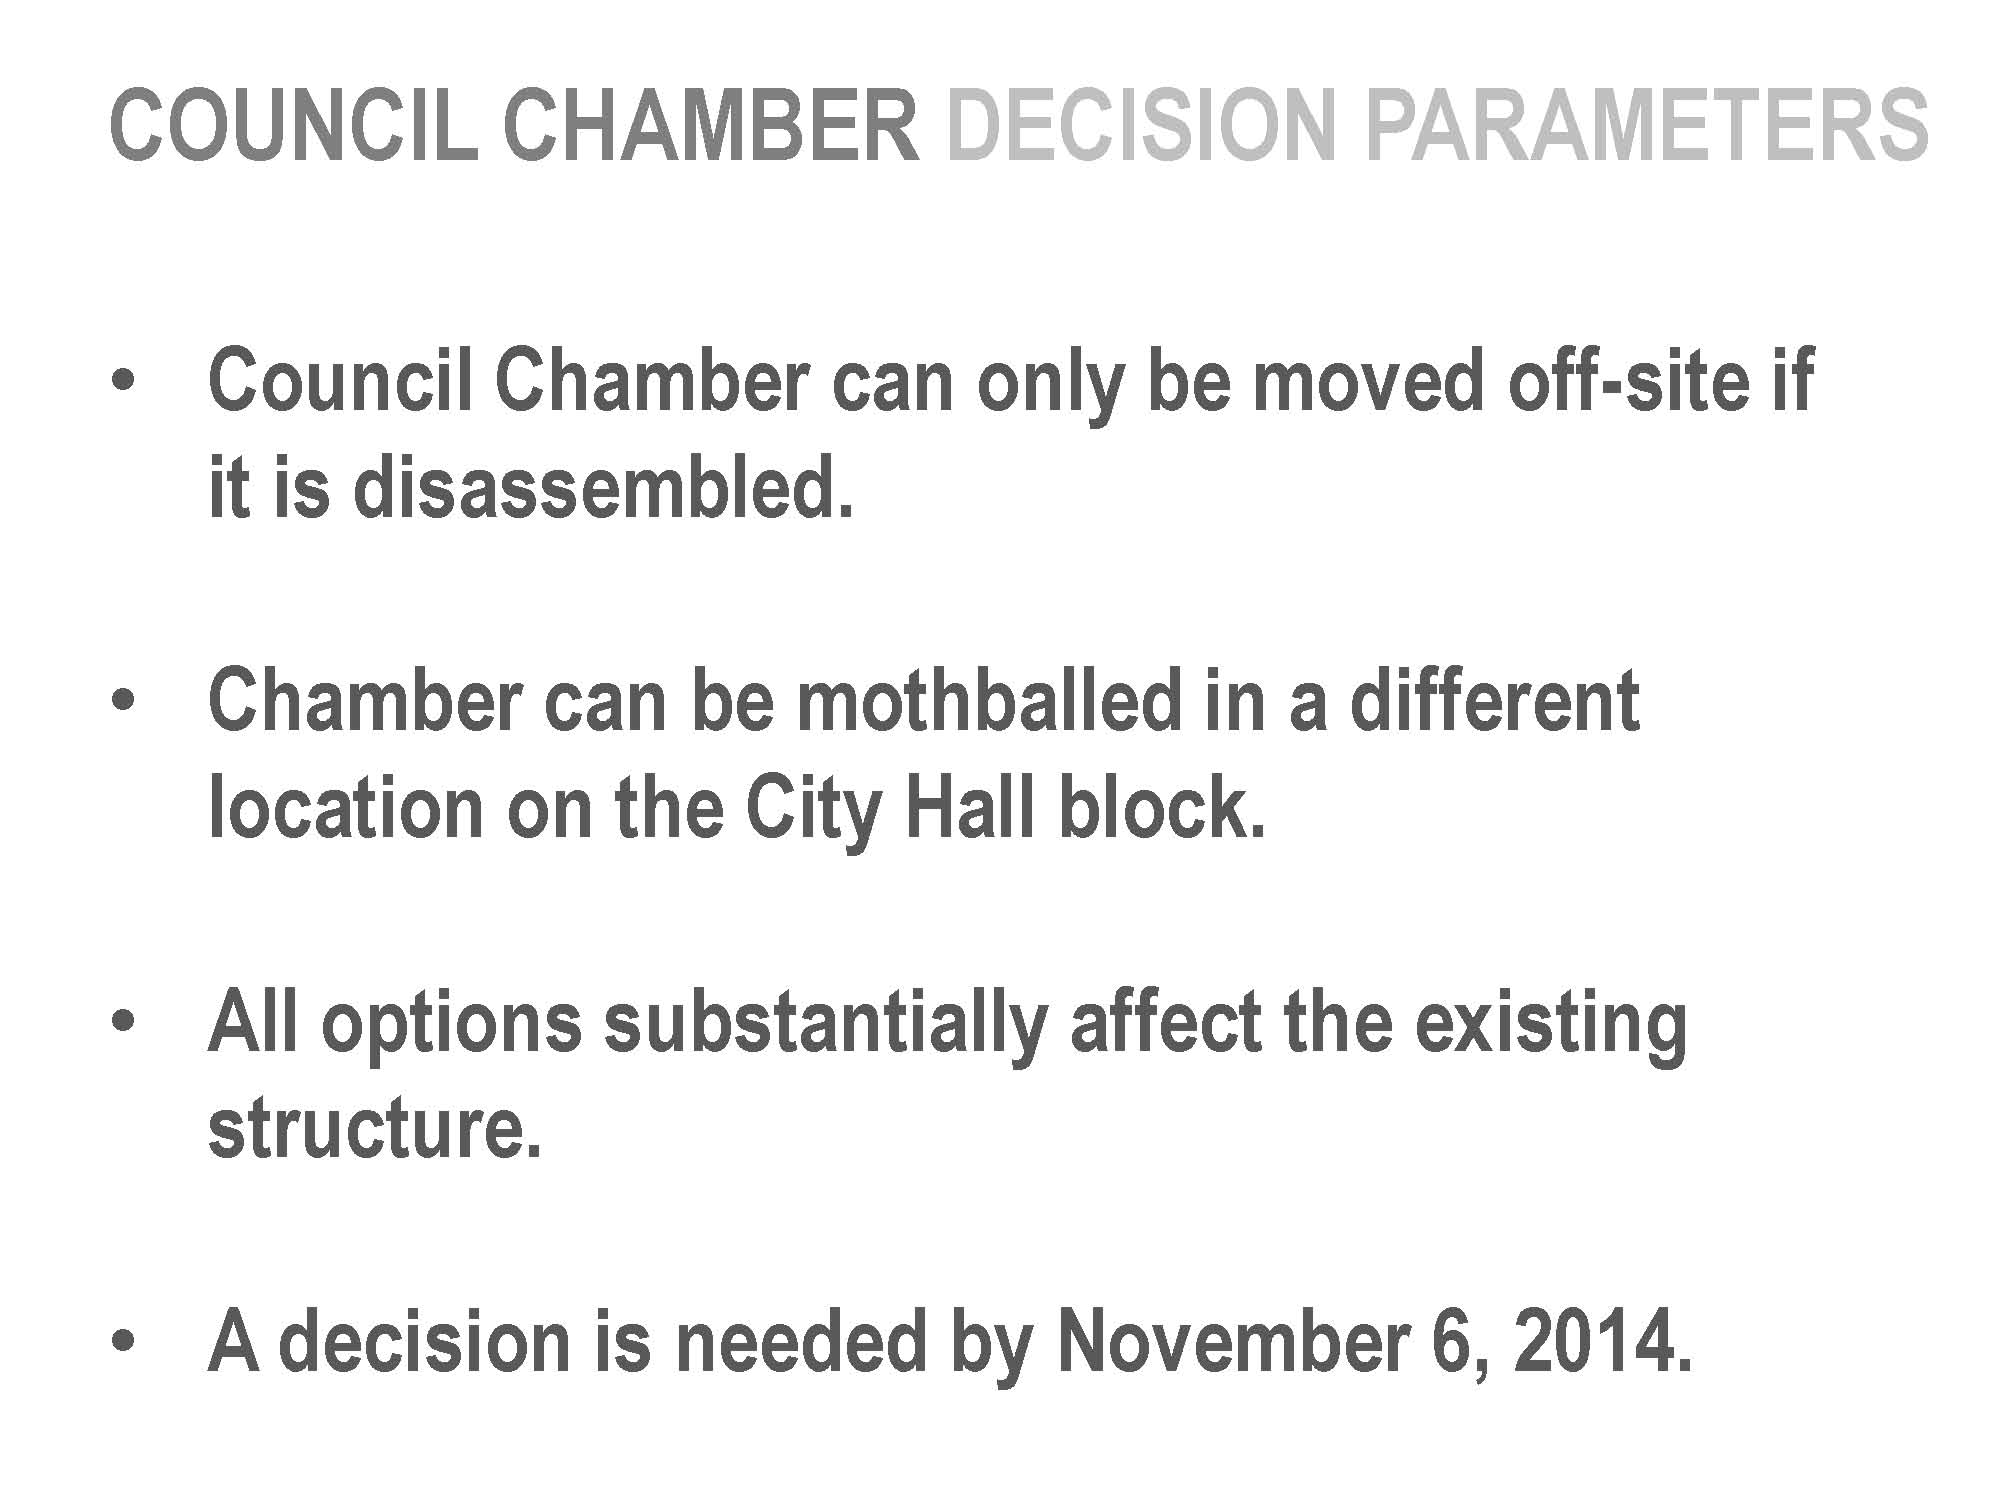 2014-10-27_CouncilDecisions_Finalweb_Page_13.jpg